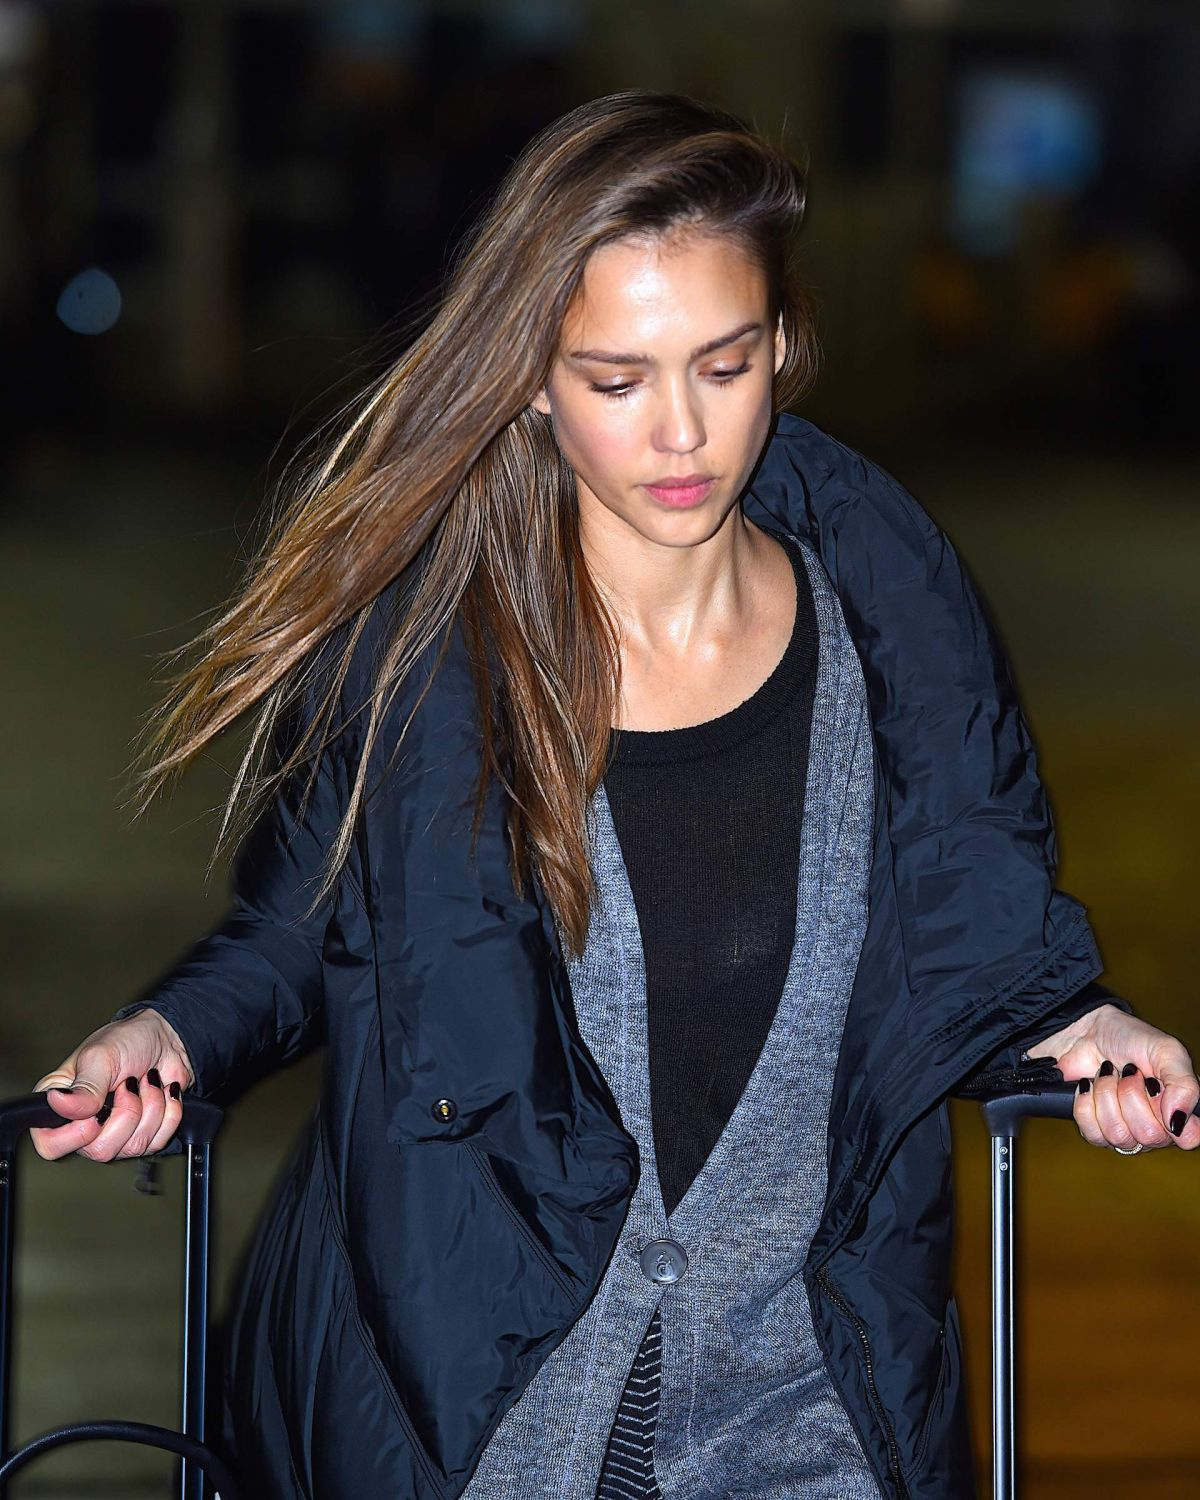 http://www.hawtcelebs.com/wp-content/uploads/2017/01/jessica-alba-at-jfk-airport-in-new-york-01-22-2017_12.jpg